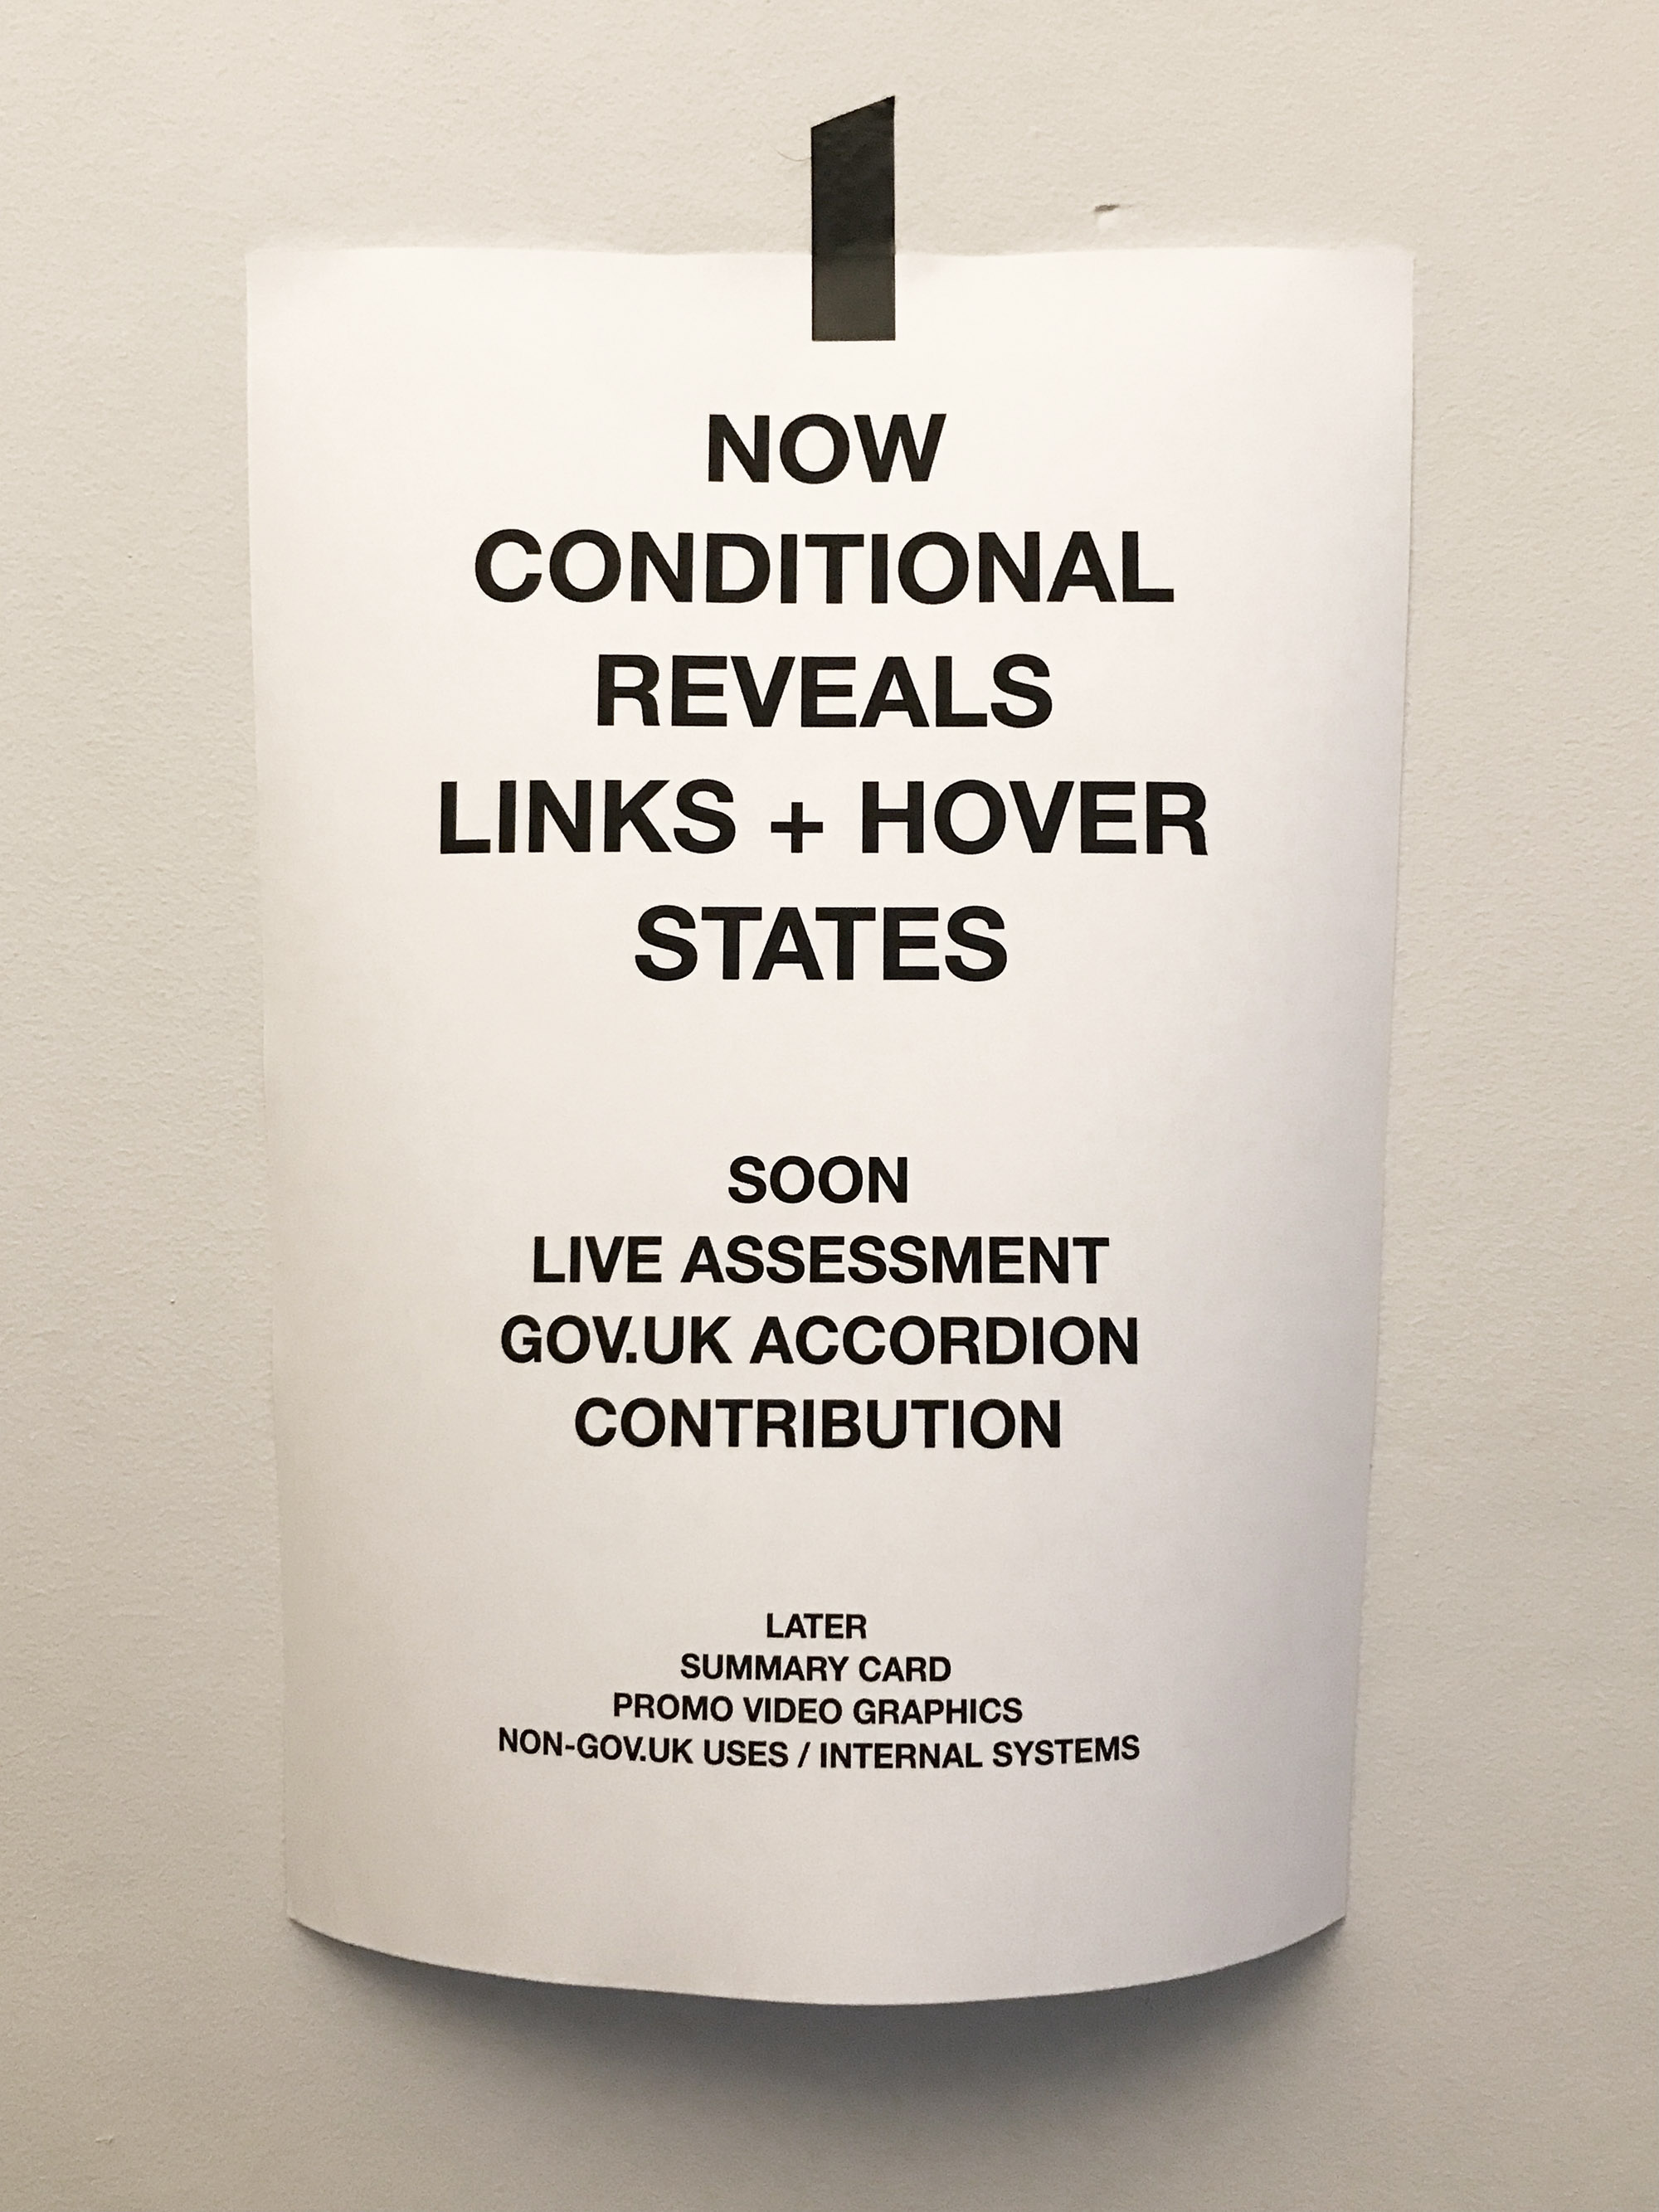 Photo of printed a4 paper that says 'NOW: CONDITIONAL REVEALS, LINKS + HOVER STATES. SOON: LIVE ASSESSMENT, GOV.UK ACCORDION CONTRIBUTION. LATER: SUMMARY CARD, PROMO VIDEO GRAPHICS, NON-GOV.UK USES / INTERNAL SYSTEMS'